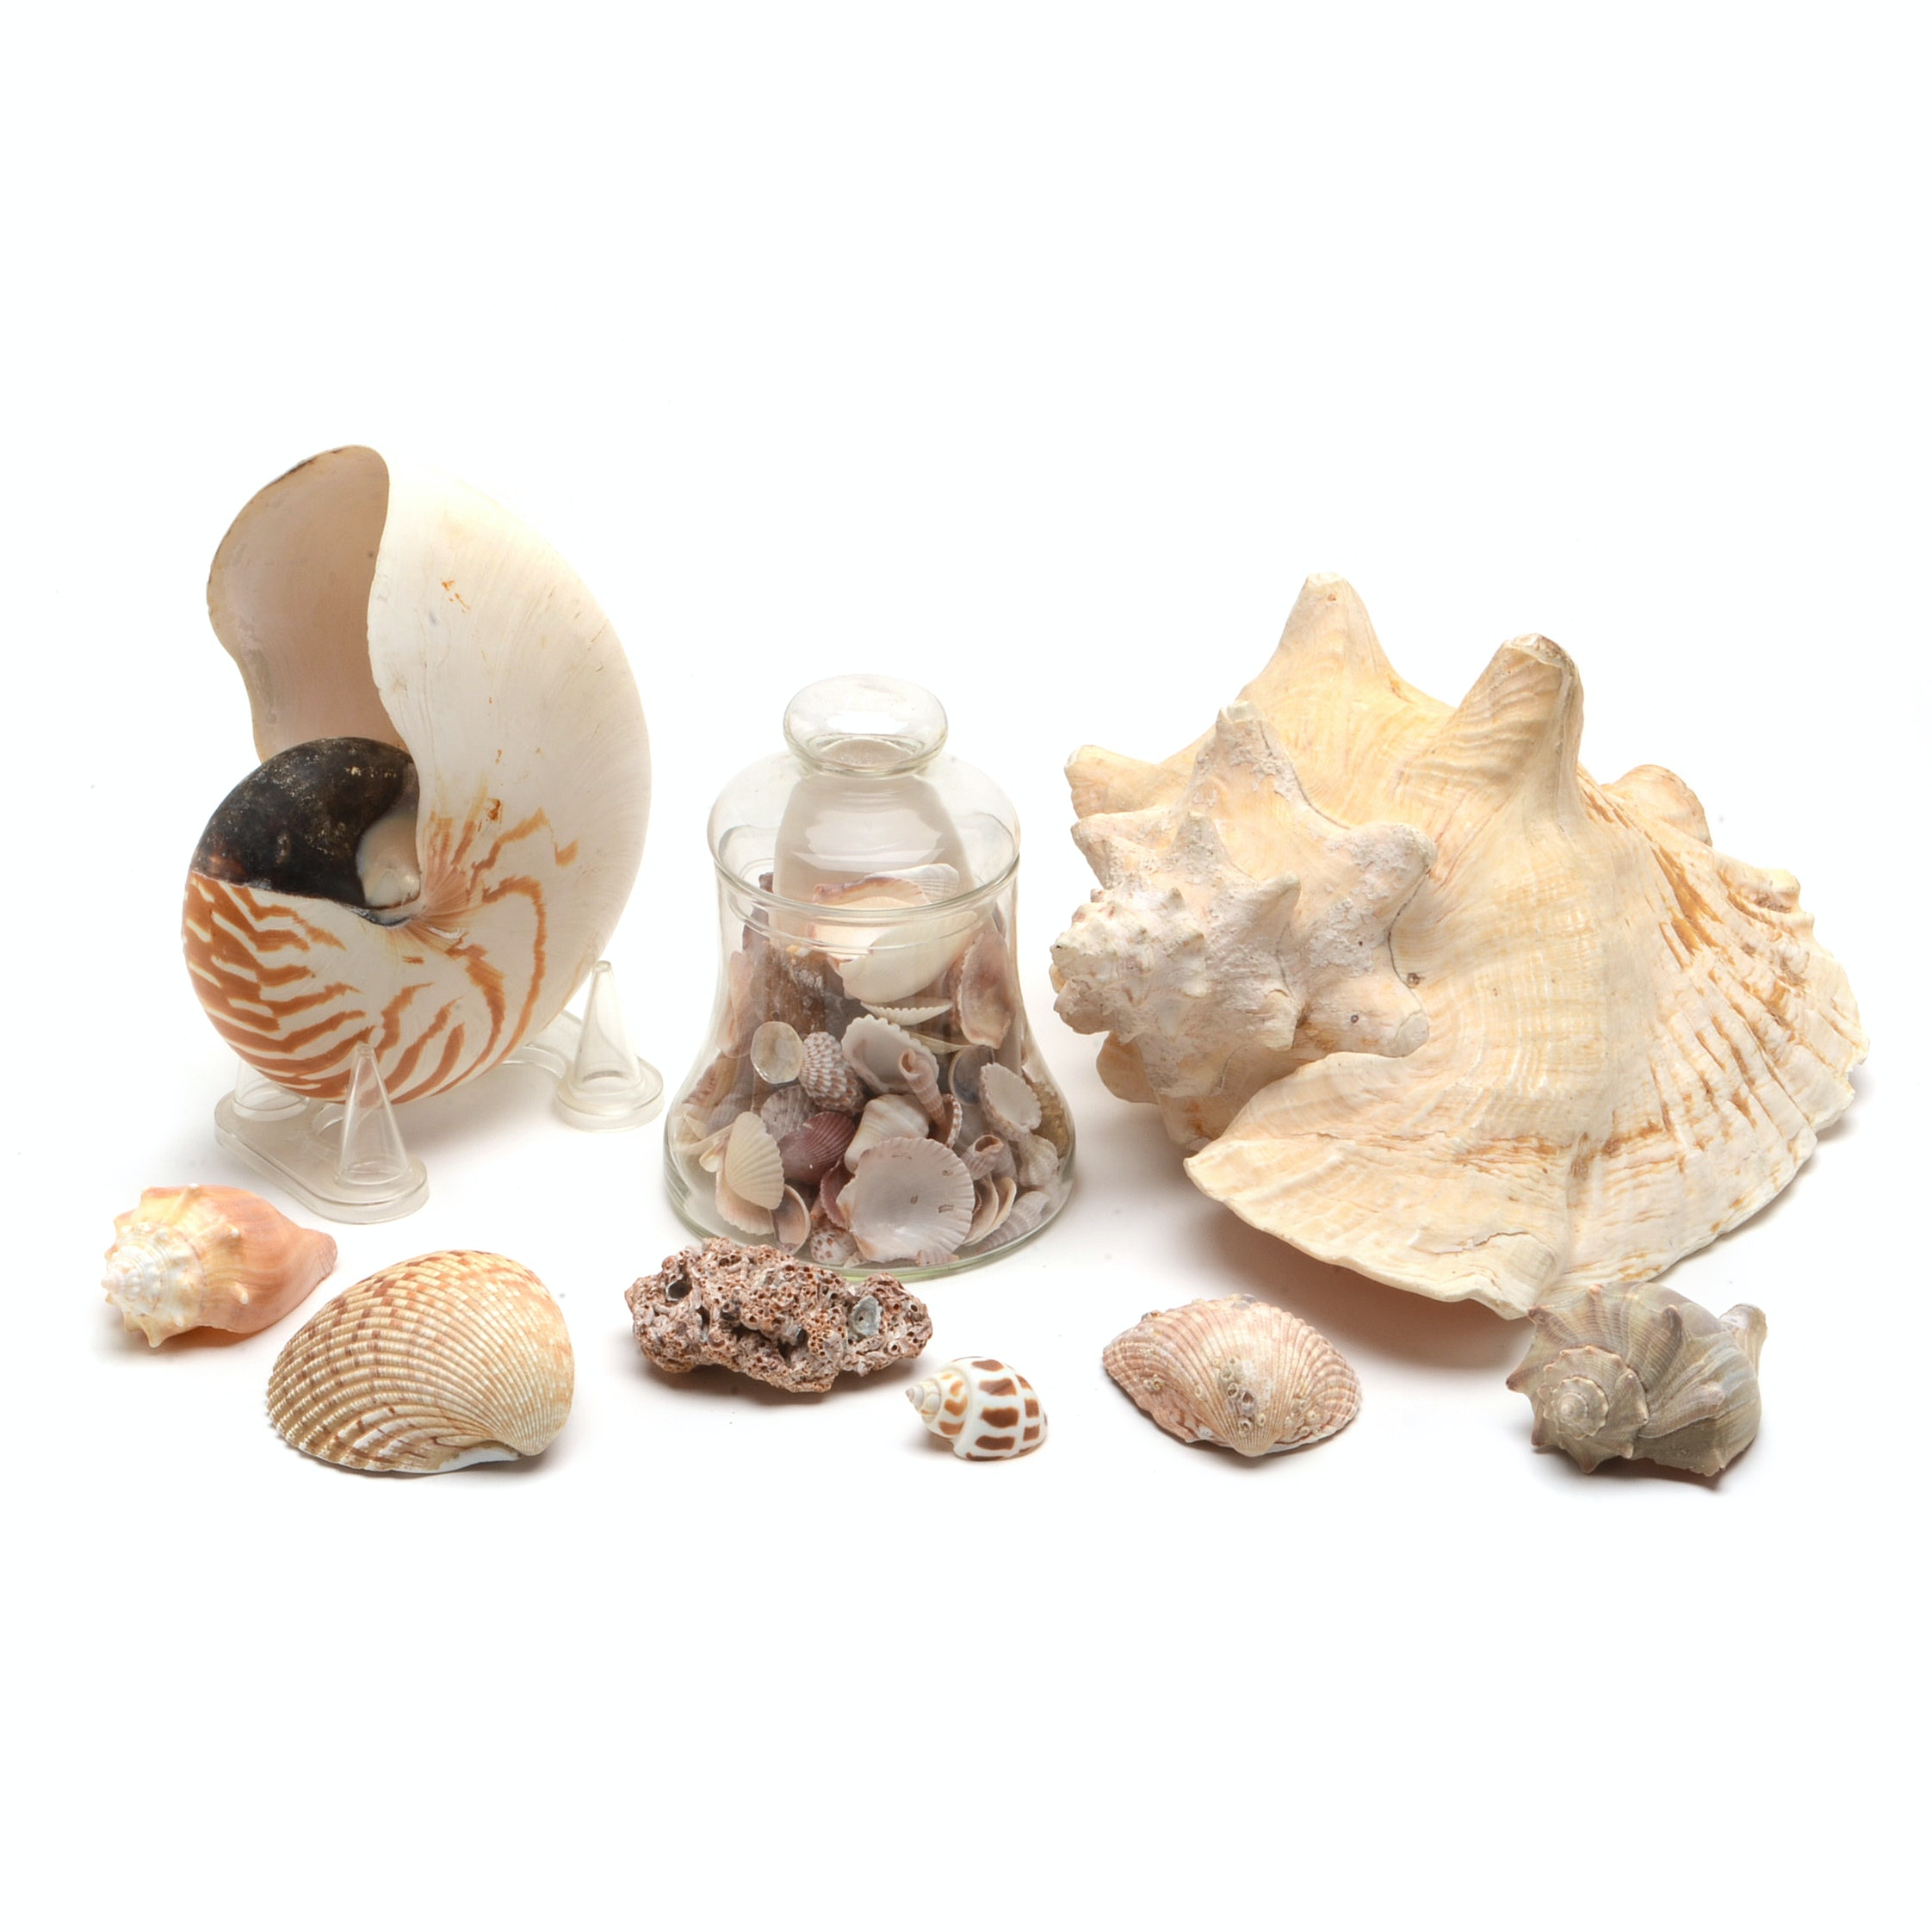 Assorted Seashell Collection Including Conch and Nautilus Shells